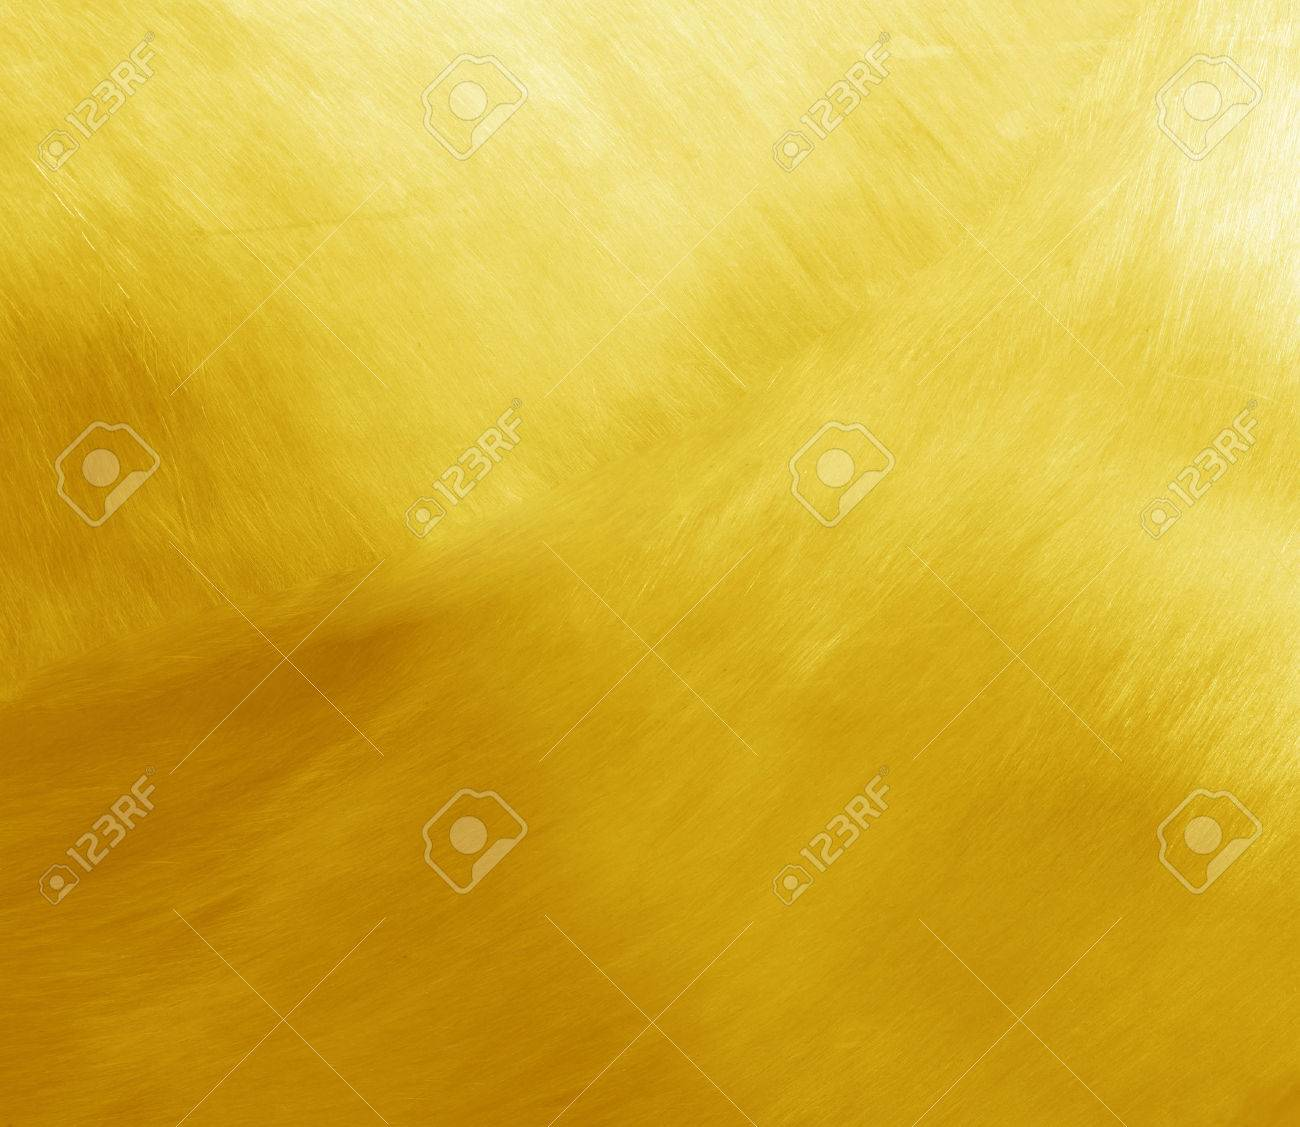 Gold texture or background Stock Photo - 48309835